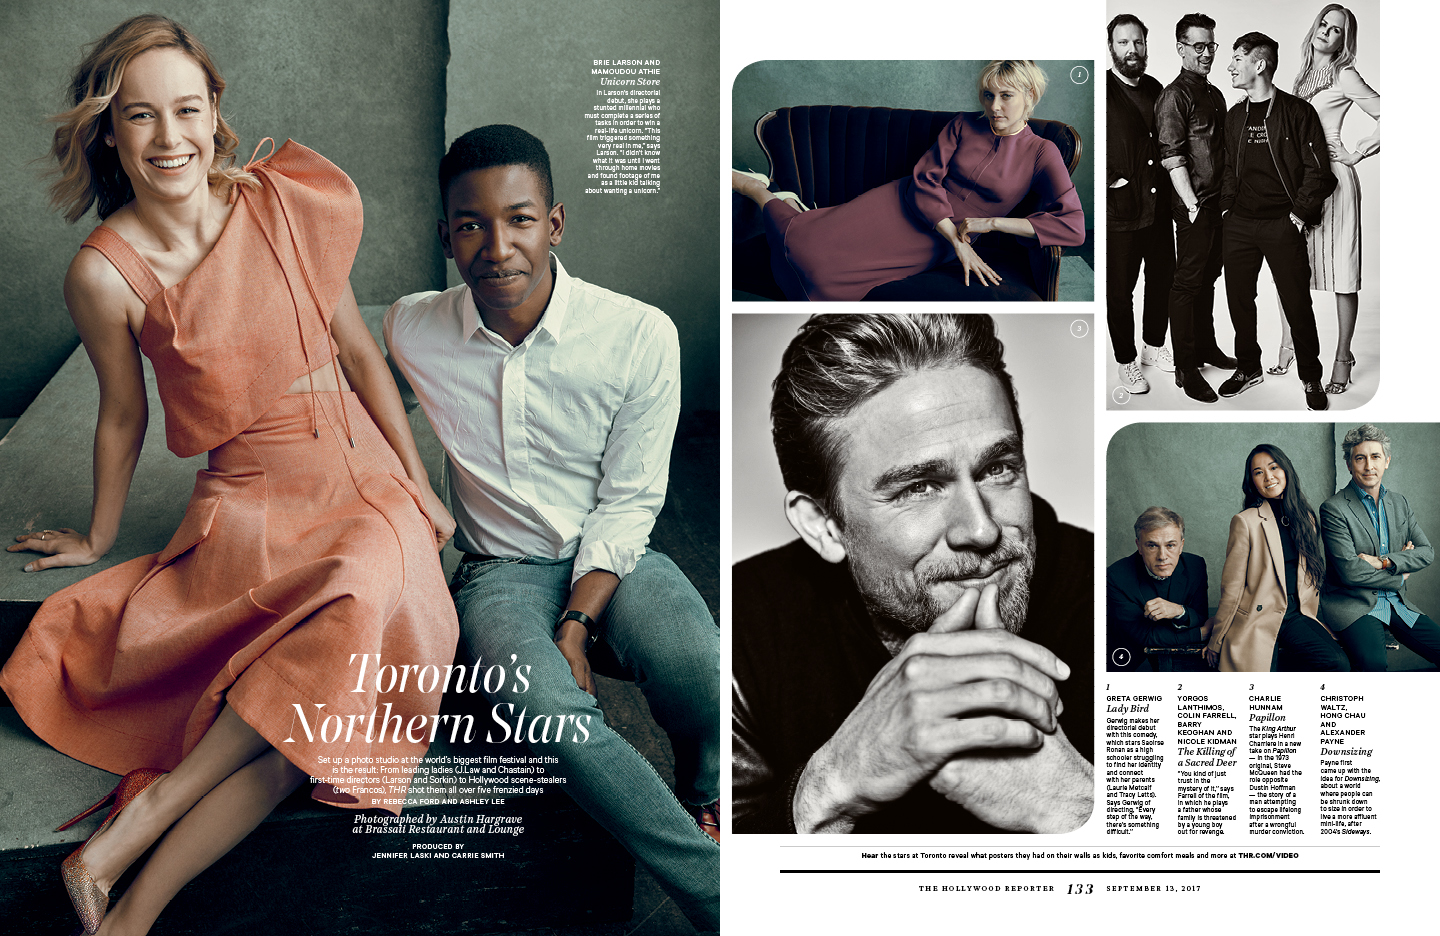 Toronto's Northern Stars / The Hollywood Reporter / 9.13.17 / kelsey stefanson / art direction + graphic design / yeskelsey.com